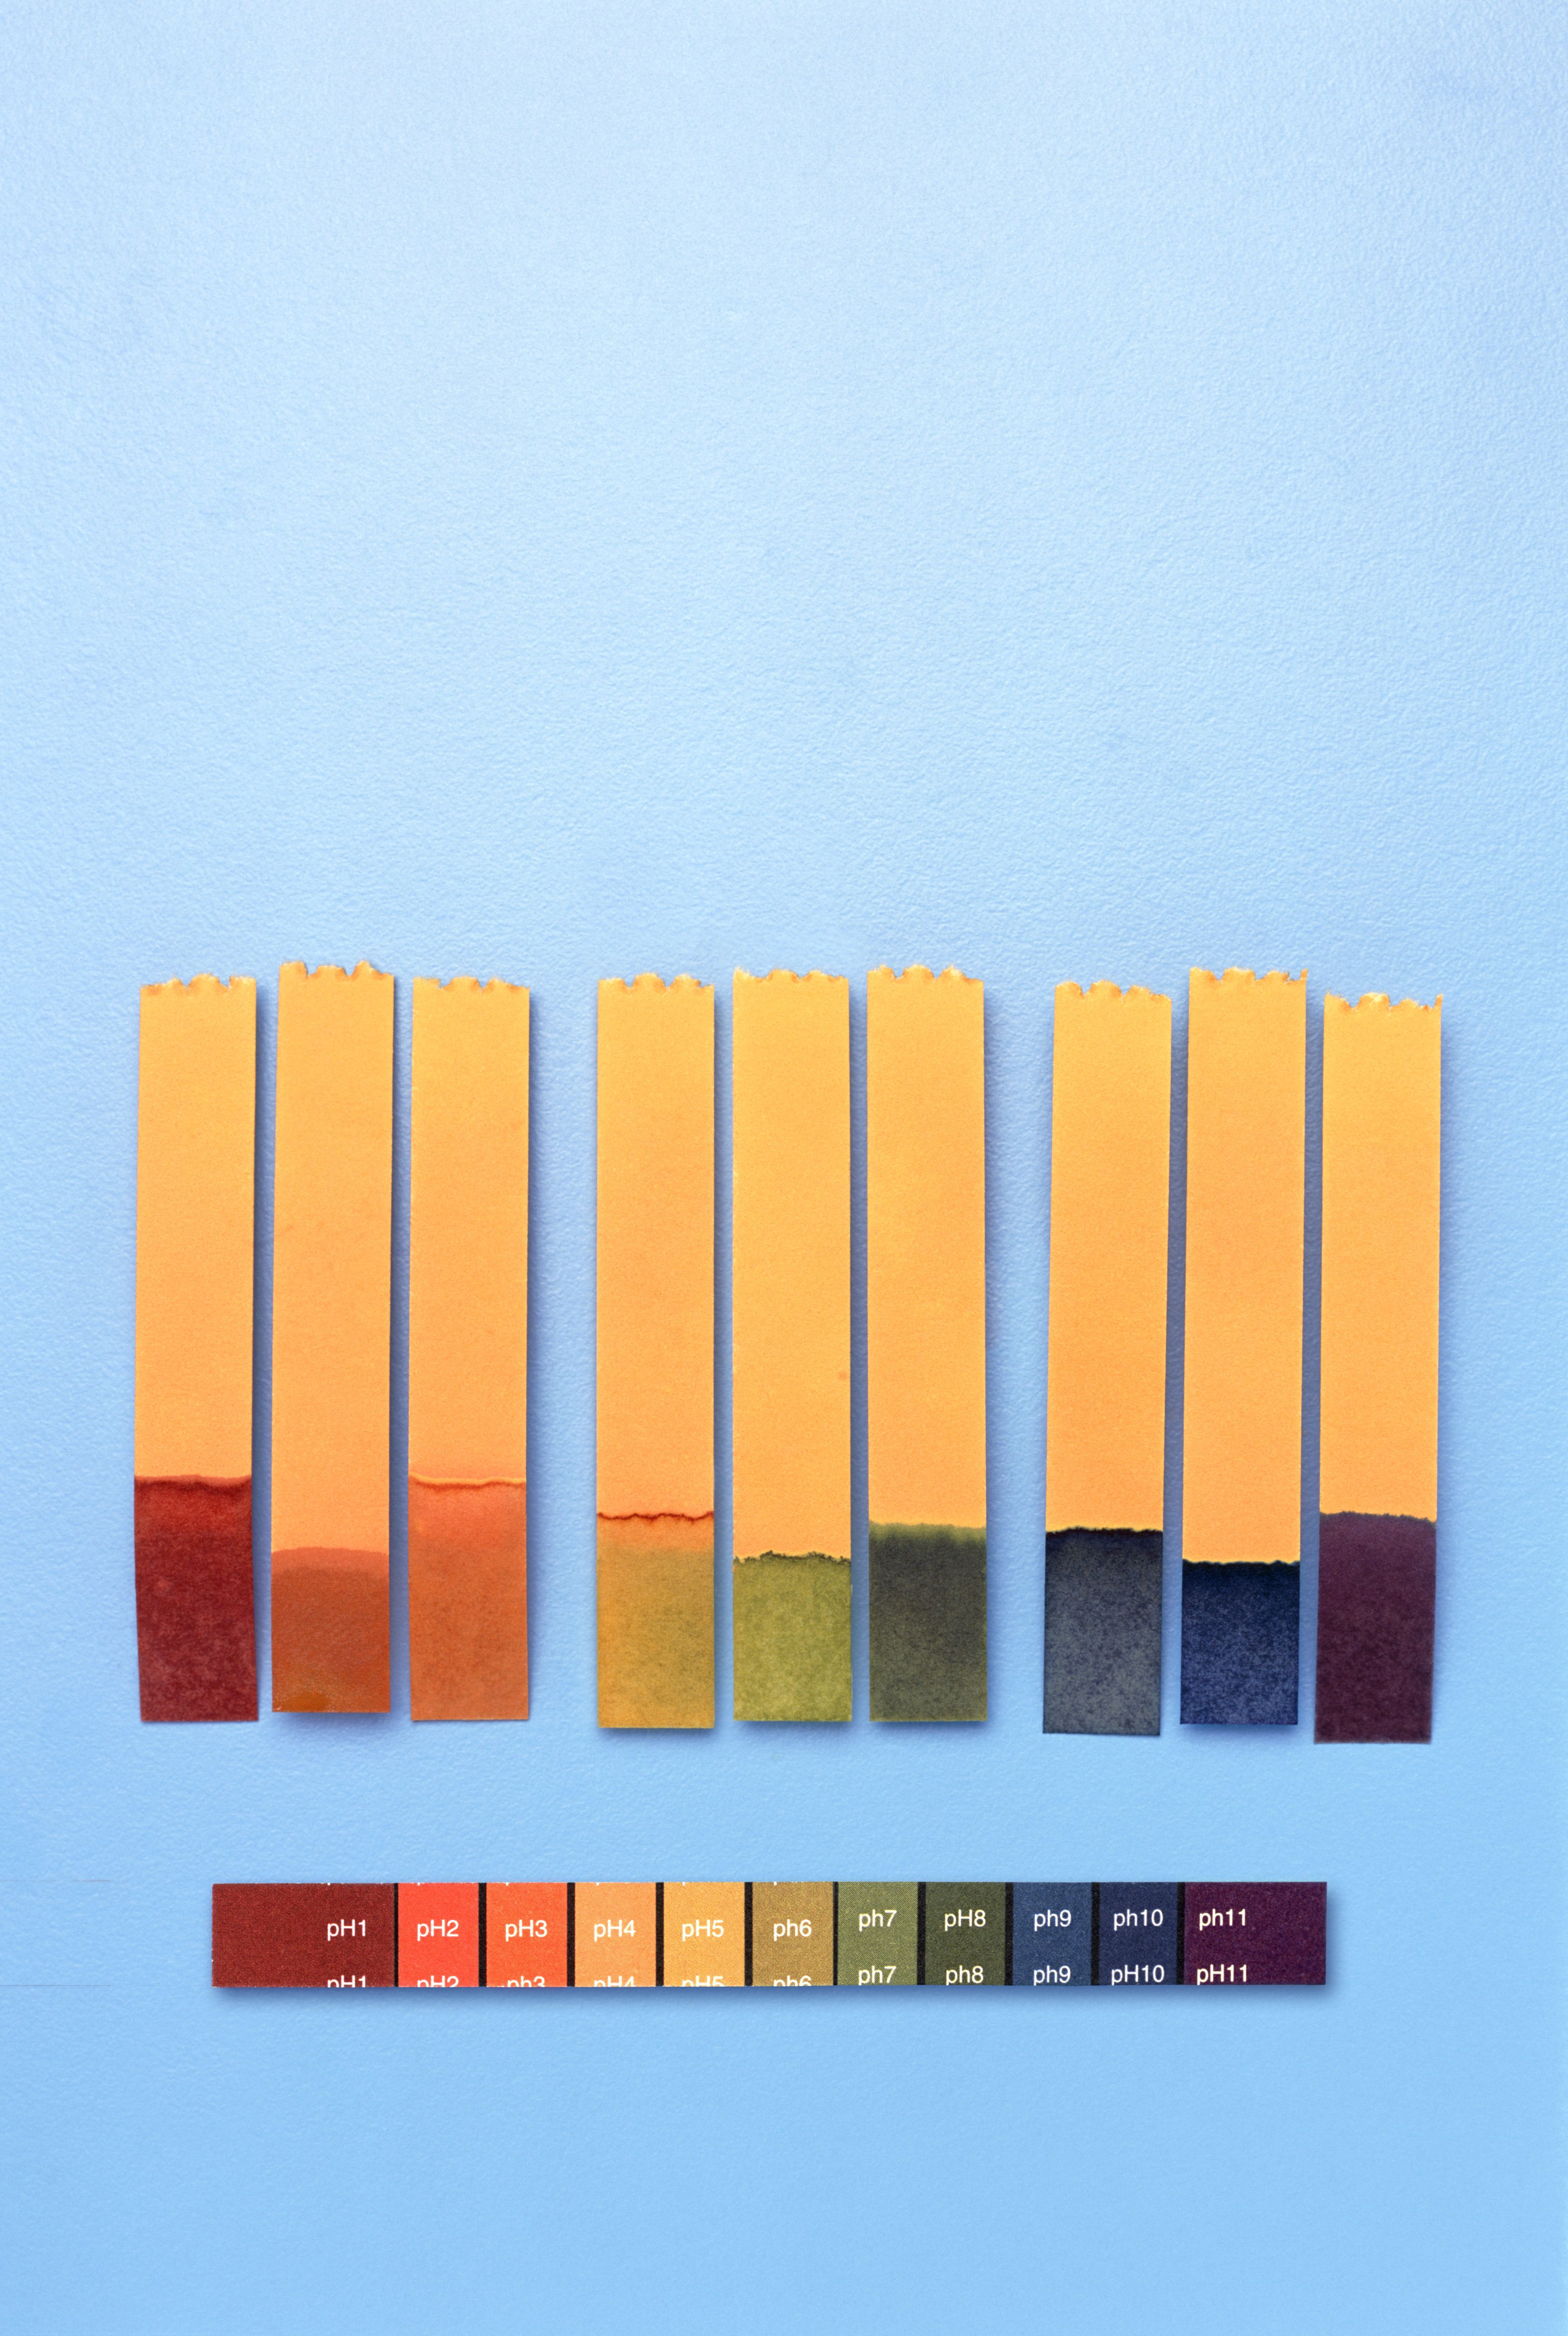 Universal Indicator Definition for Universal Indicator Solution  53kxo